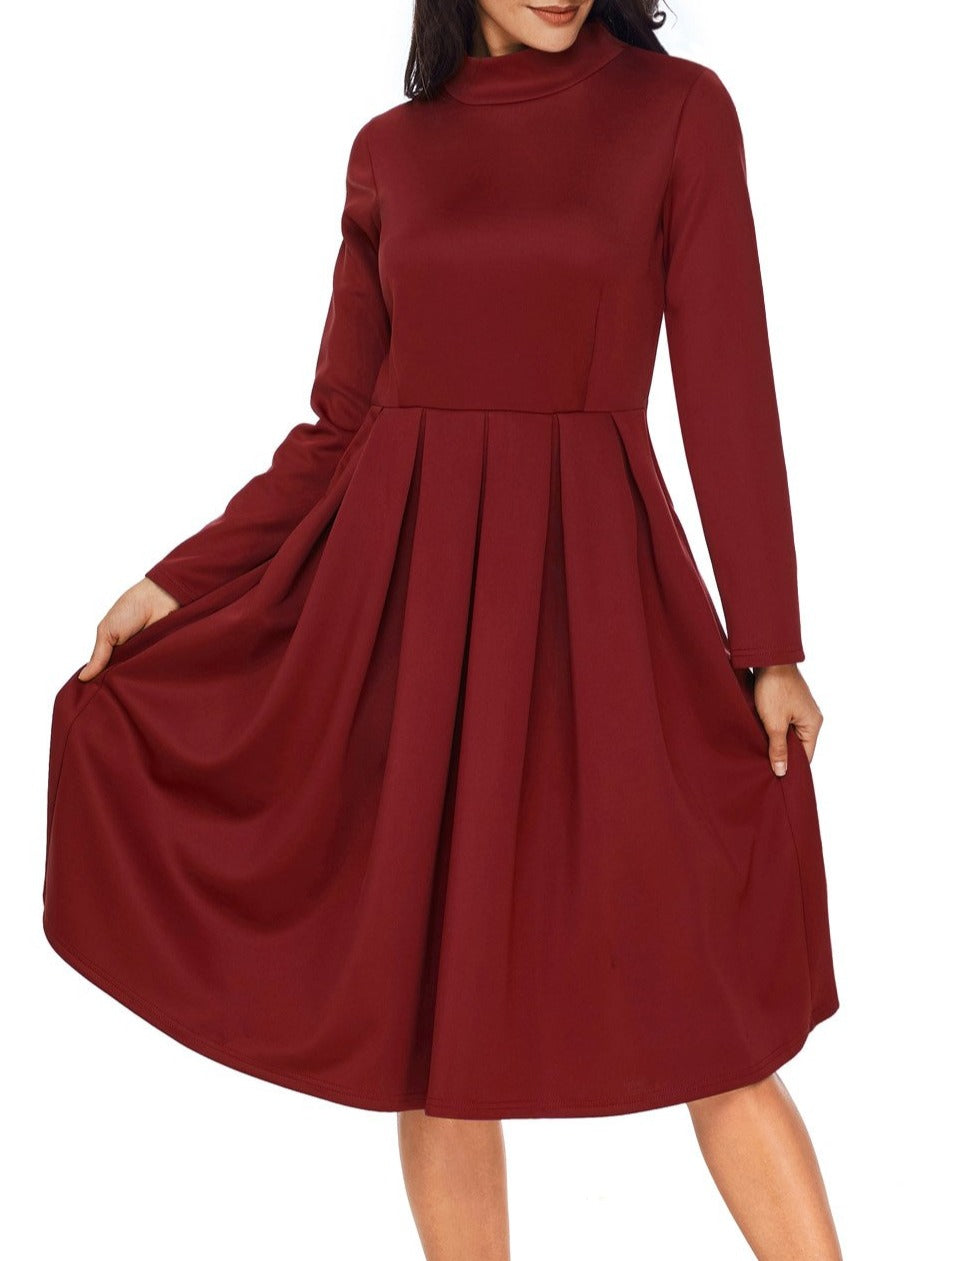 Burgundy Pocket Style High Neck Skater Dress